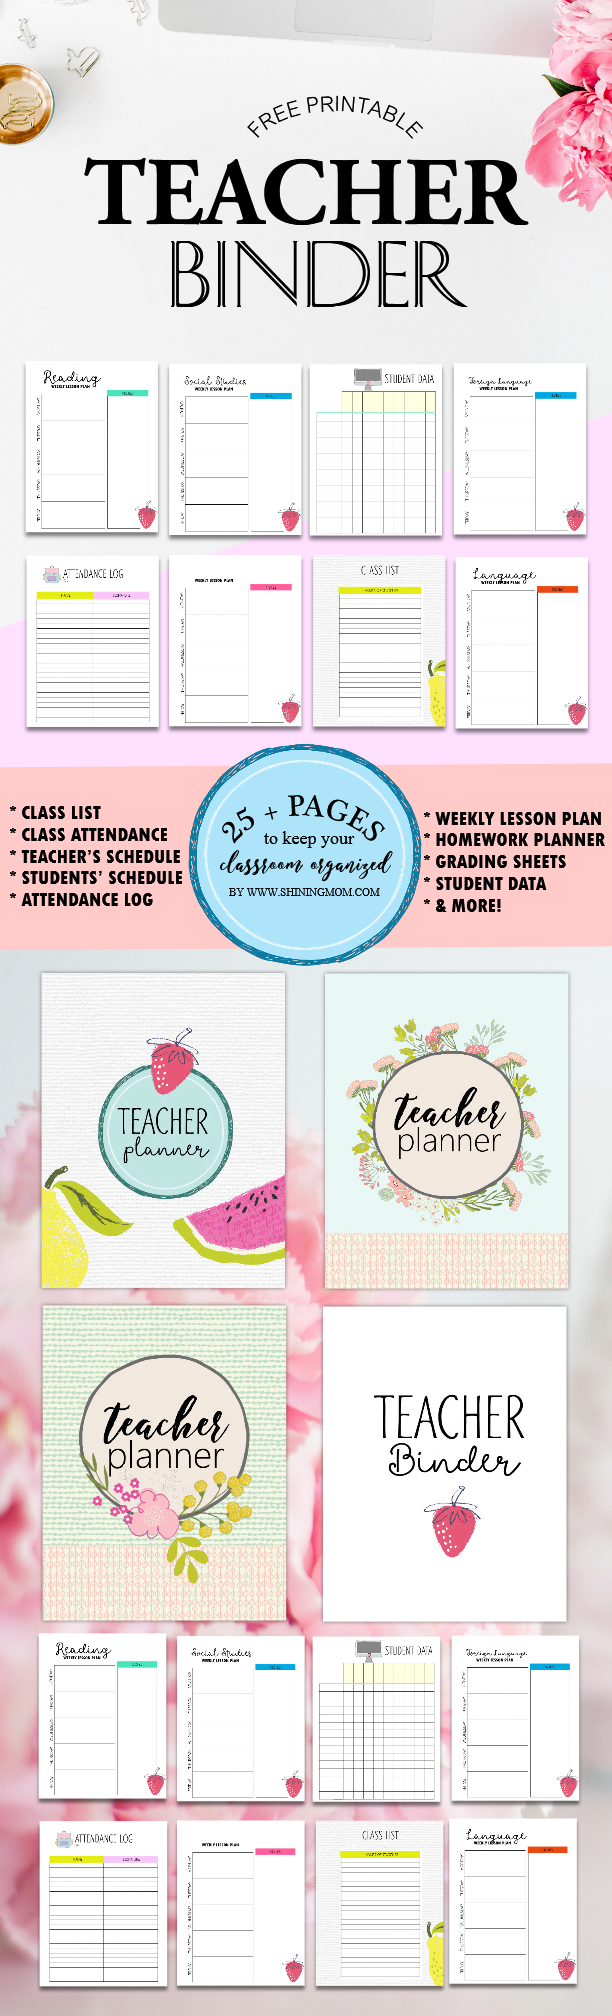 Free Teacher Binder Printables: Over 25 Pretty Planning Templates! - Free Printable Teacher Planner Pages